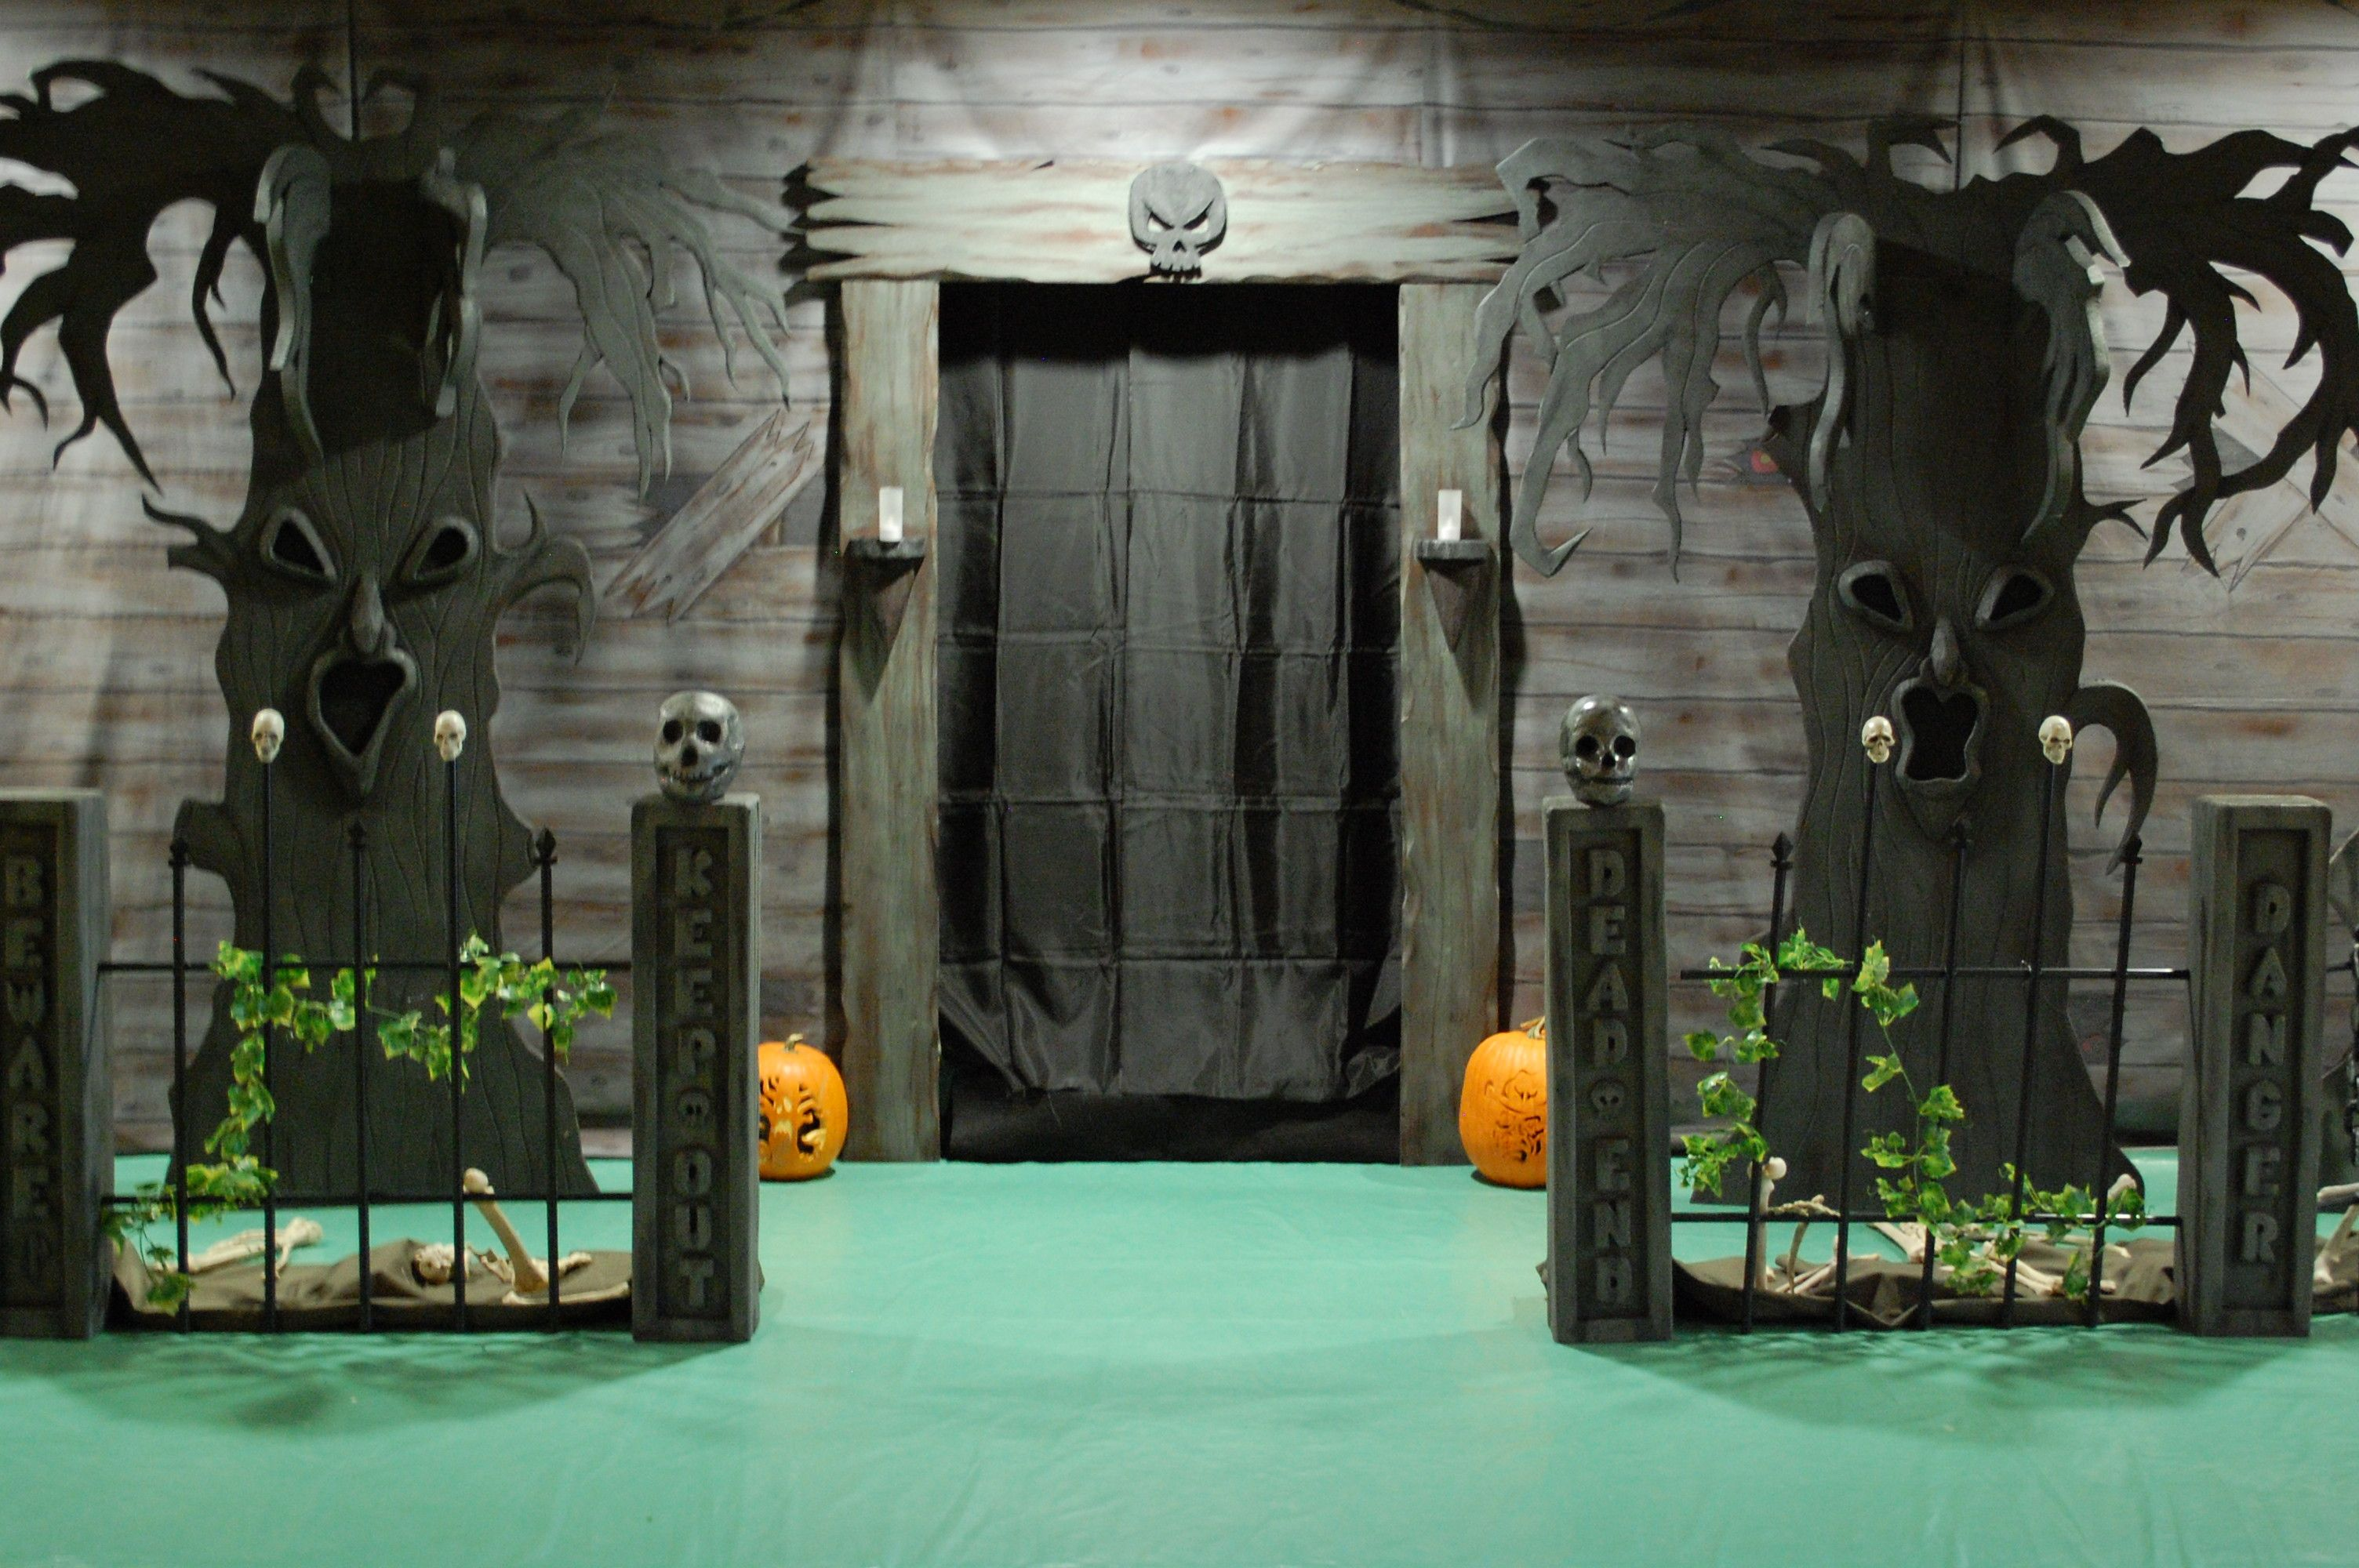 Pin By Kristy Hawkins Giron On Boo Halloween Haunted House Decorations Haunted House Decorations Halloween Haunted Houses